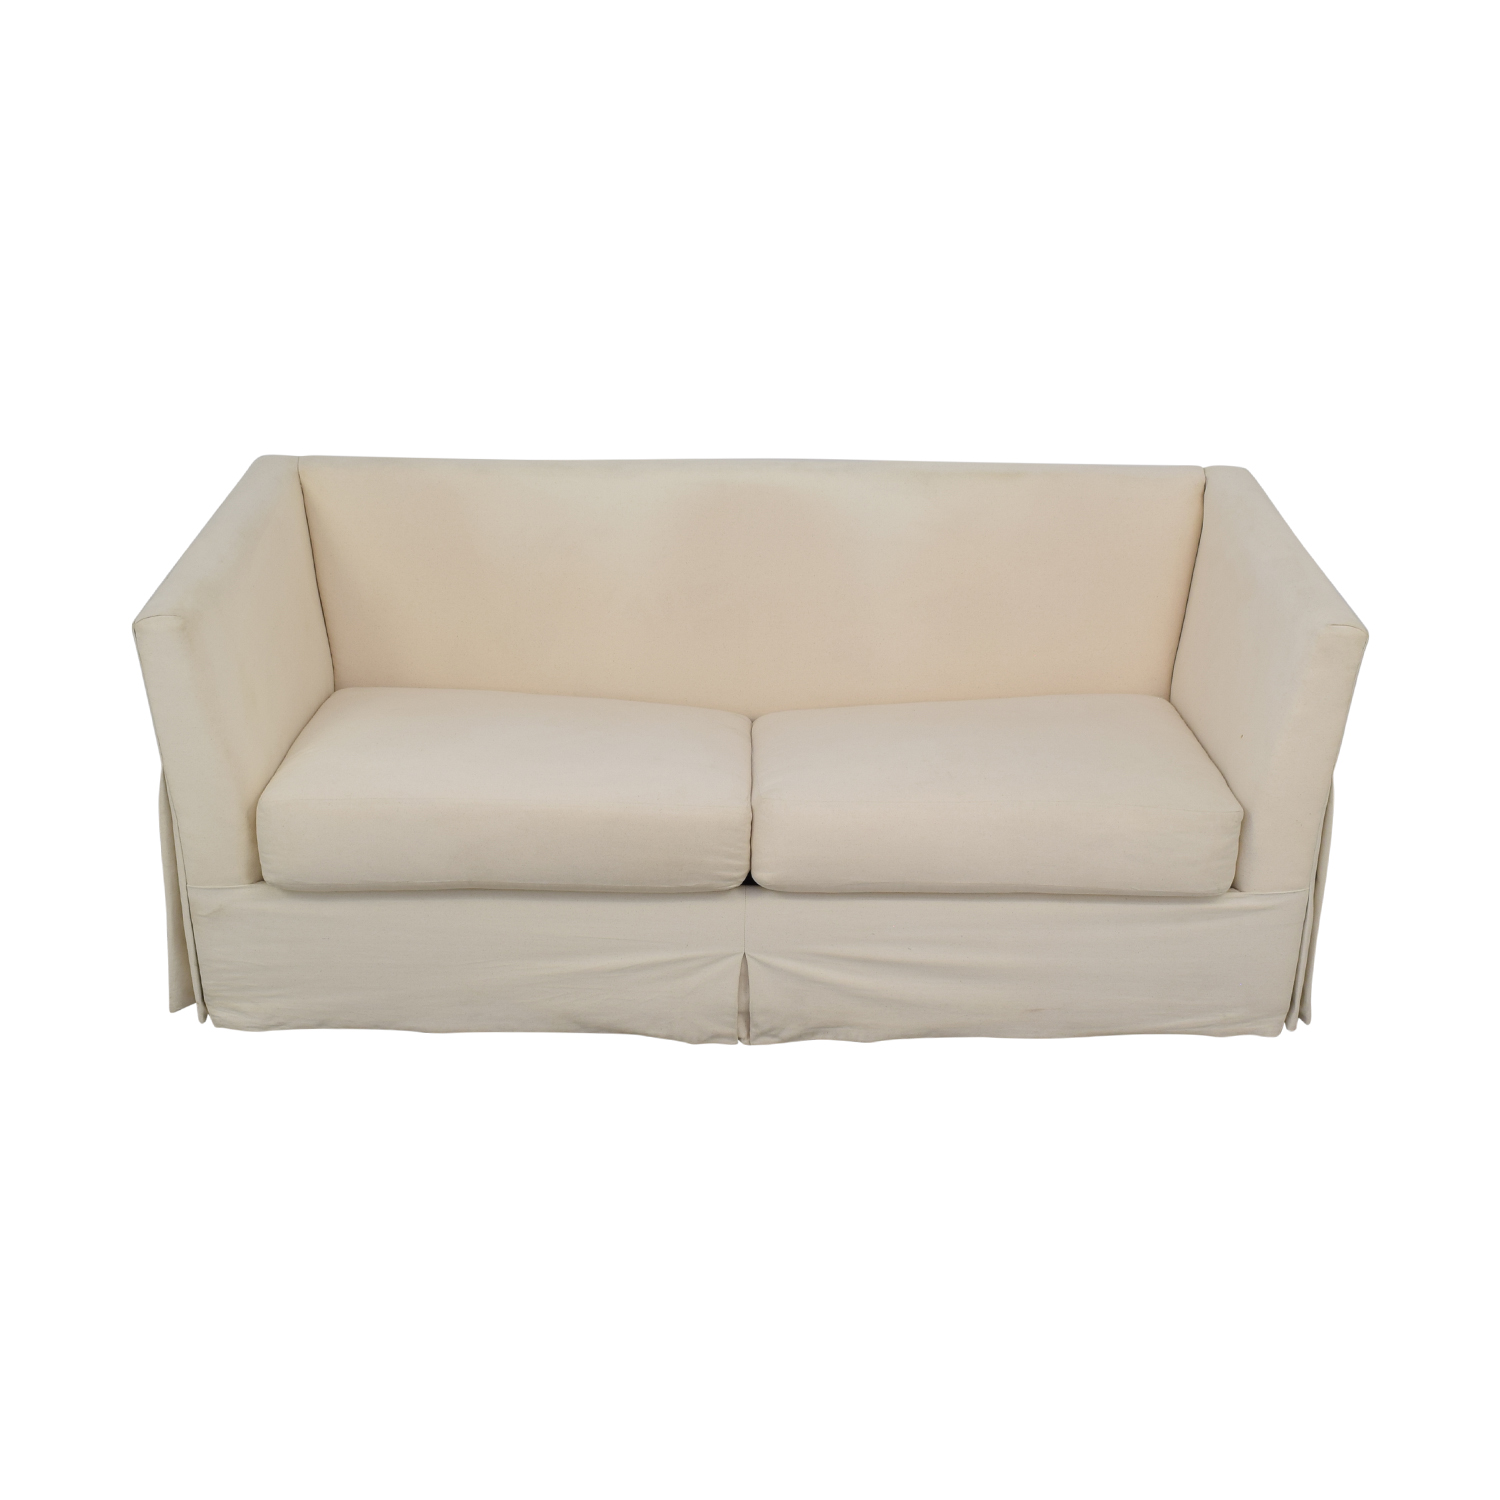 Century Furniture Century Furniture Palm Beach Queen Sleeper coupon